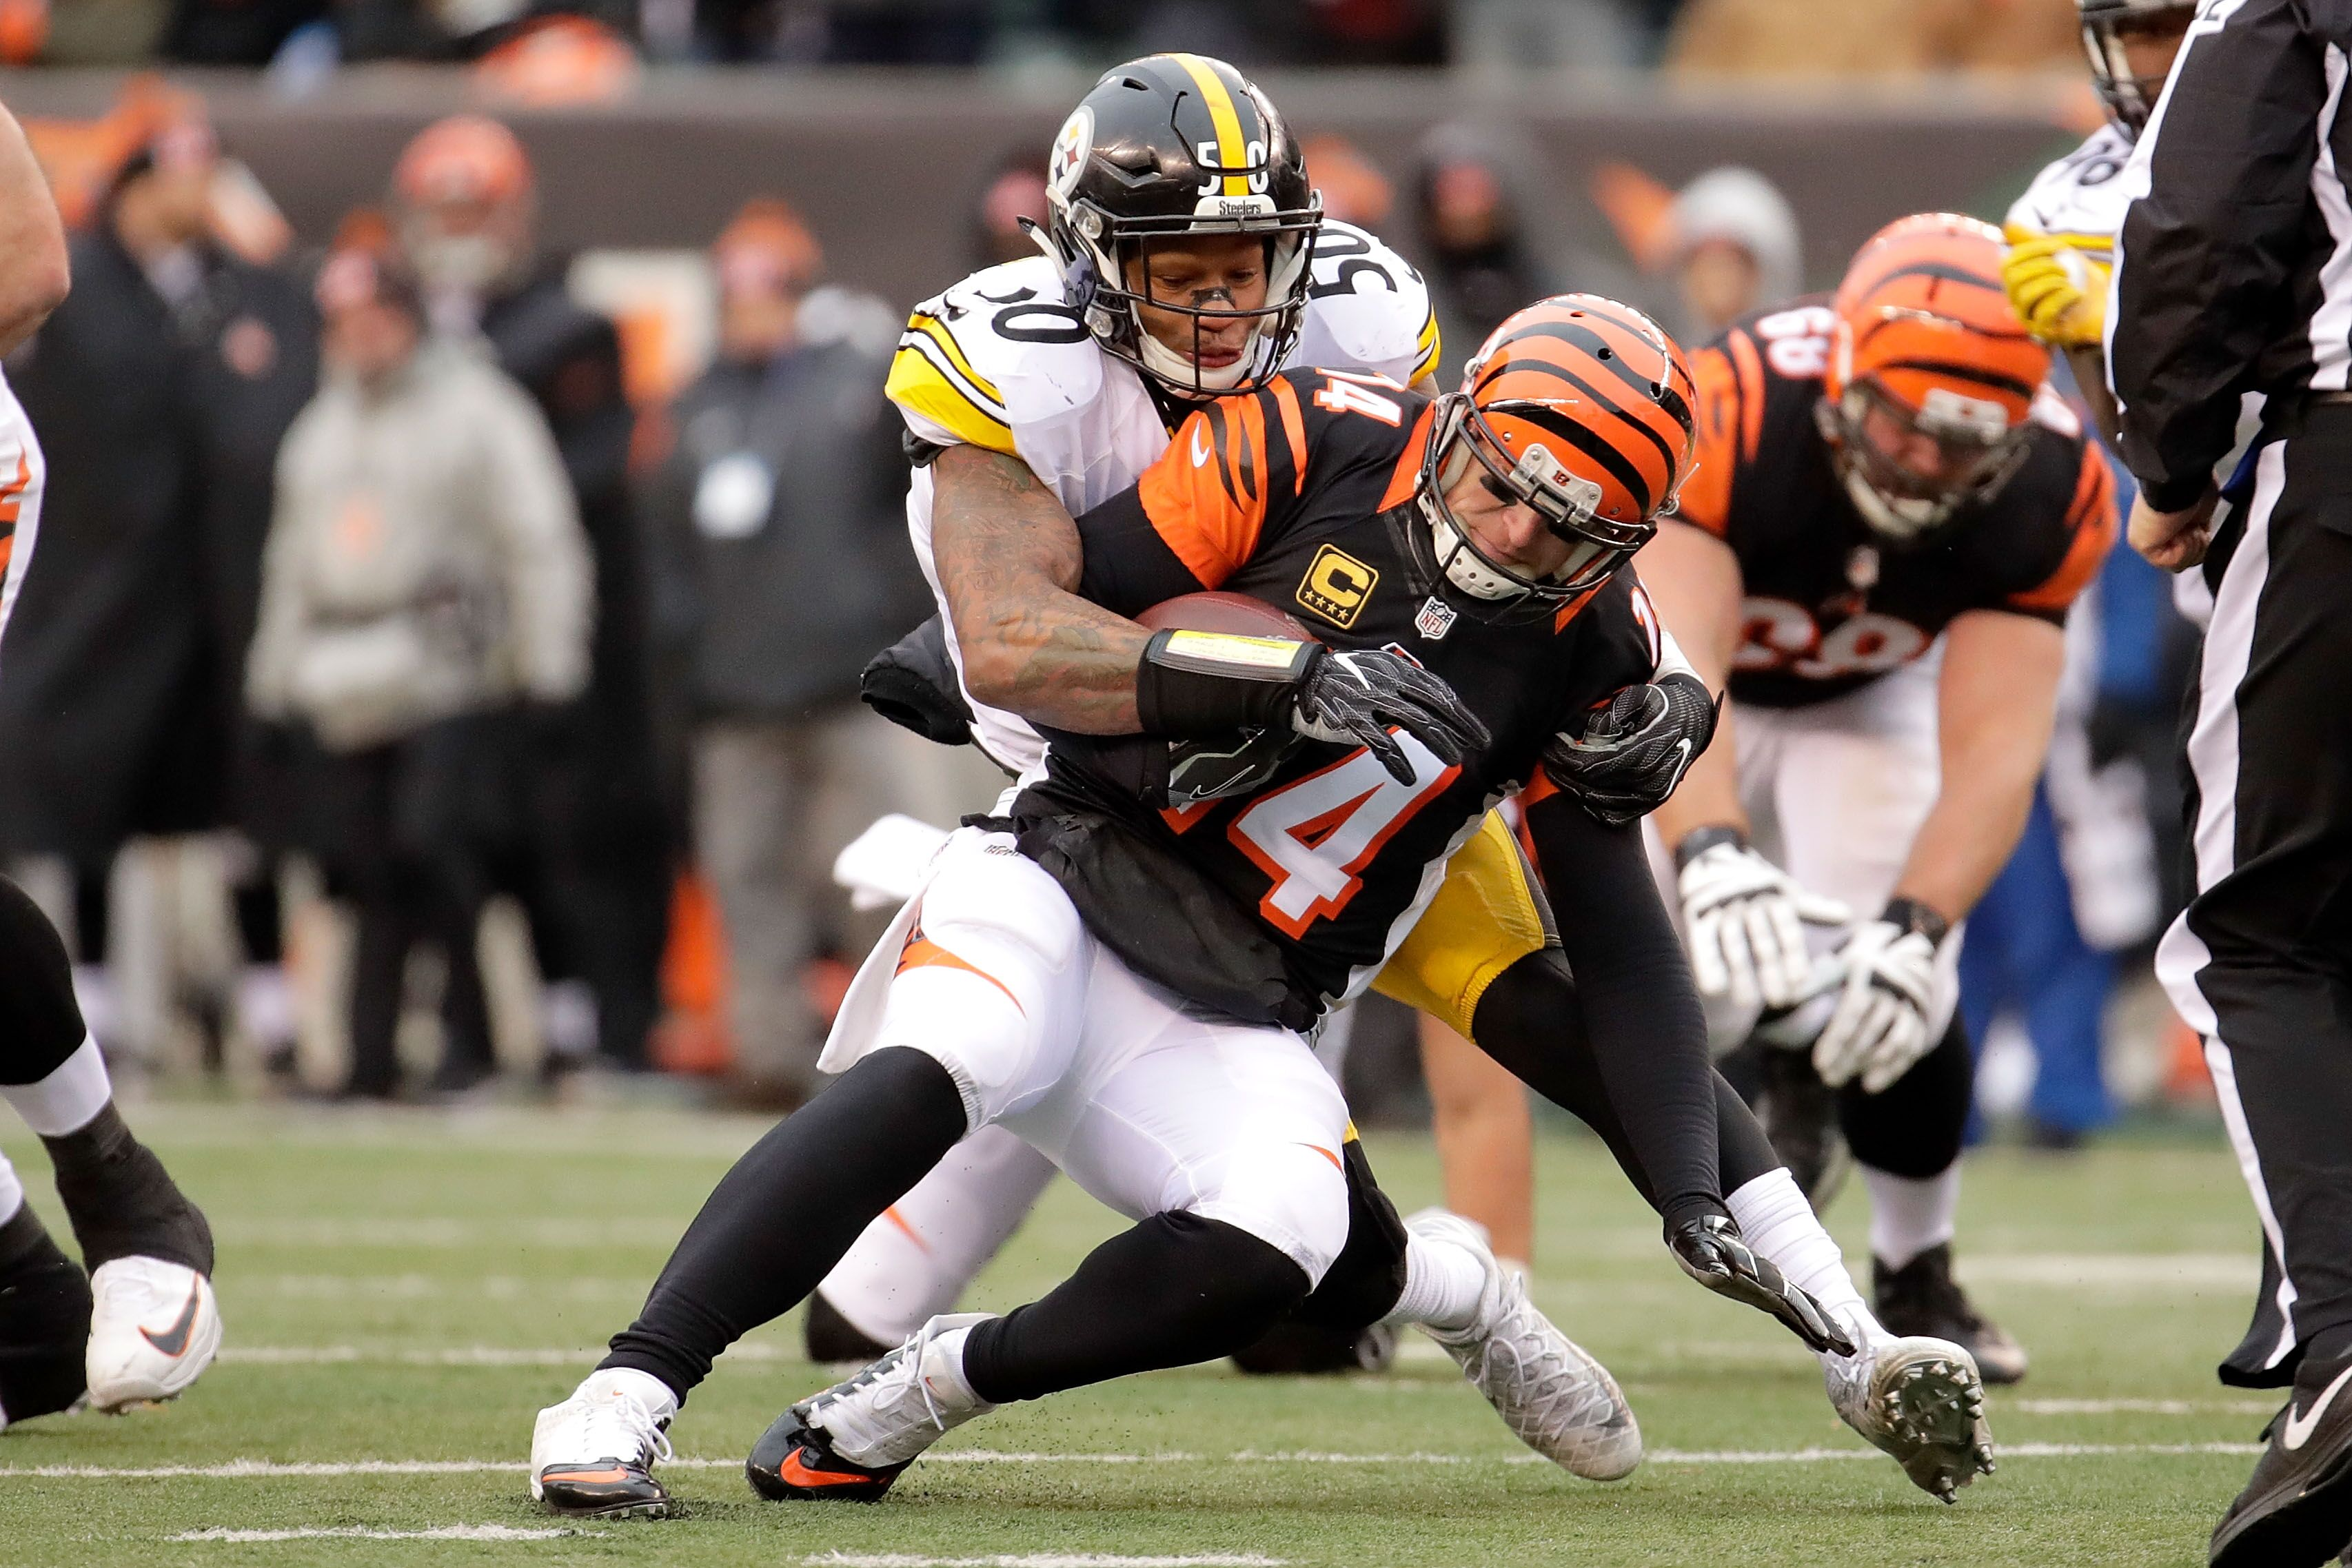 Steelers vs. Bengals: Which Bengals player do you want on the Steelers?